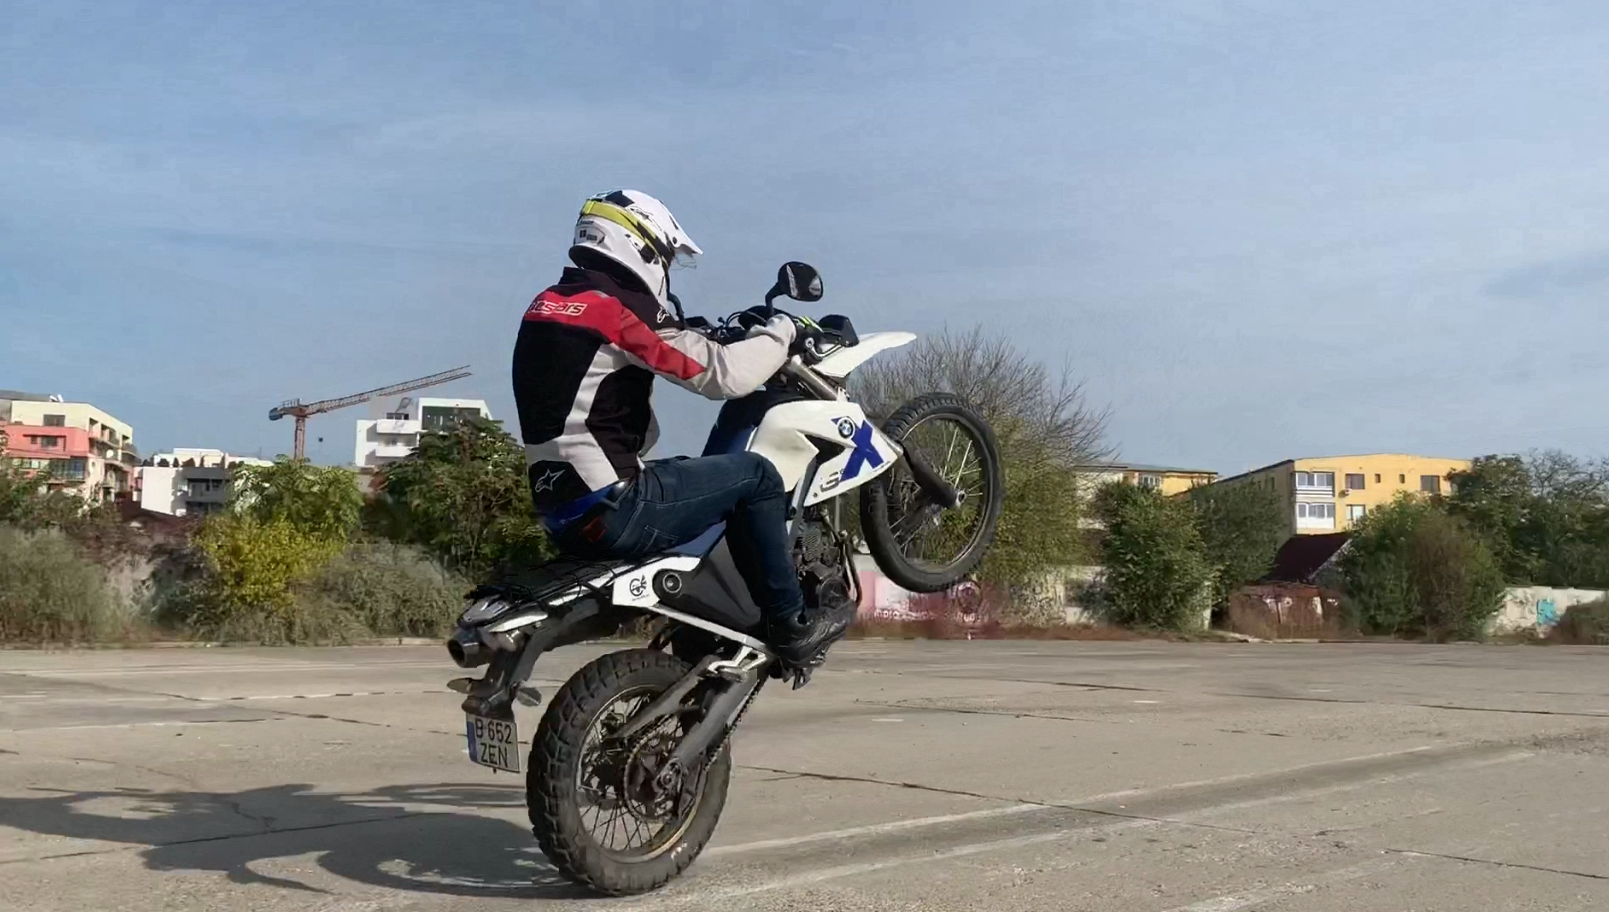 Wheelies in poligon + Sarituri la Coclau